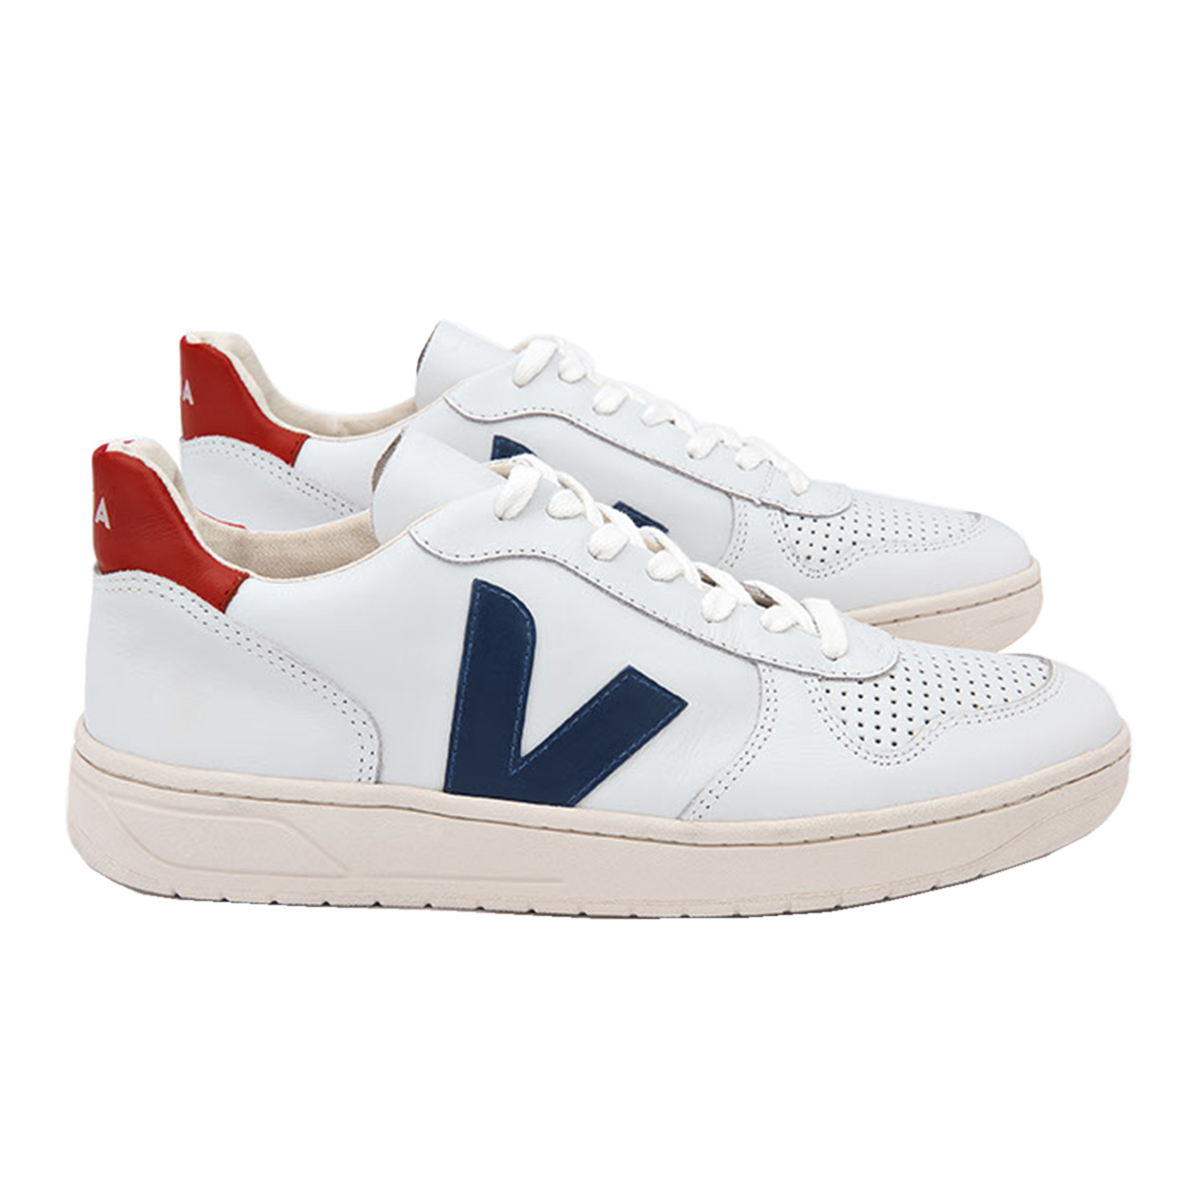 Veja Adult V10 in Extra White Nautico and Pekin